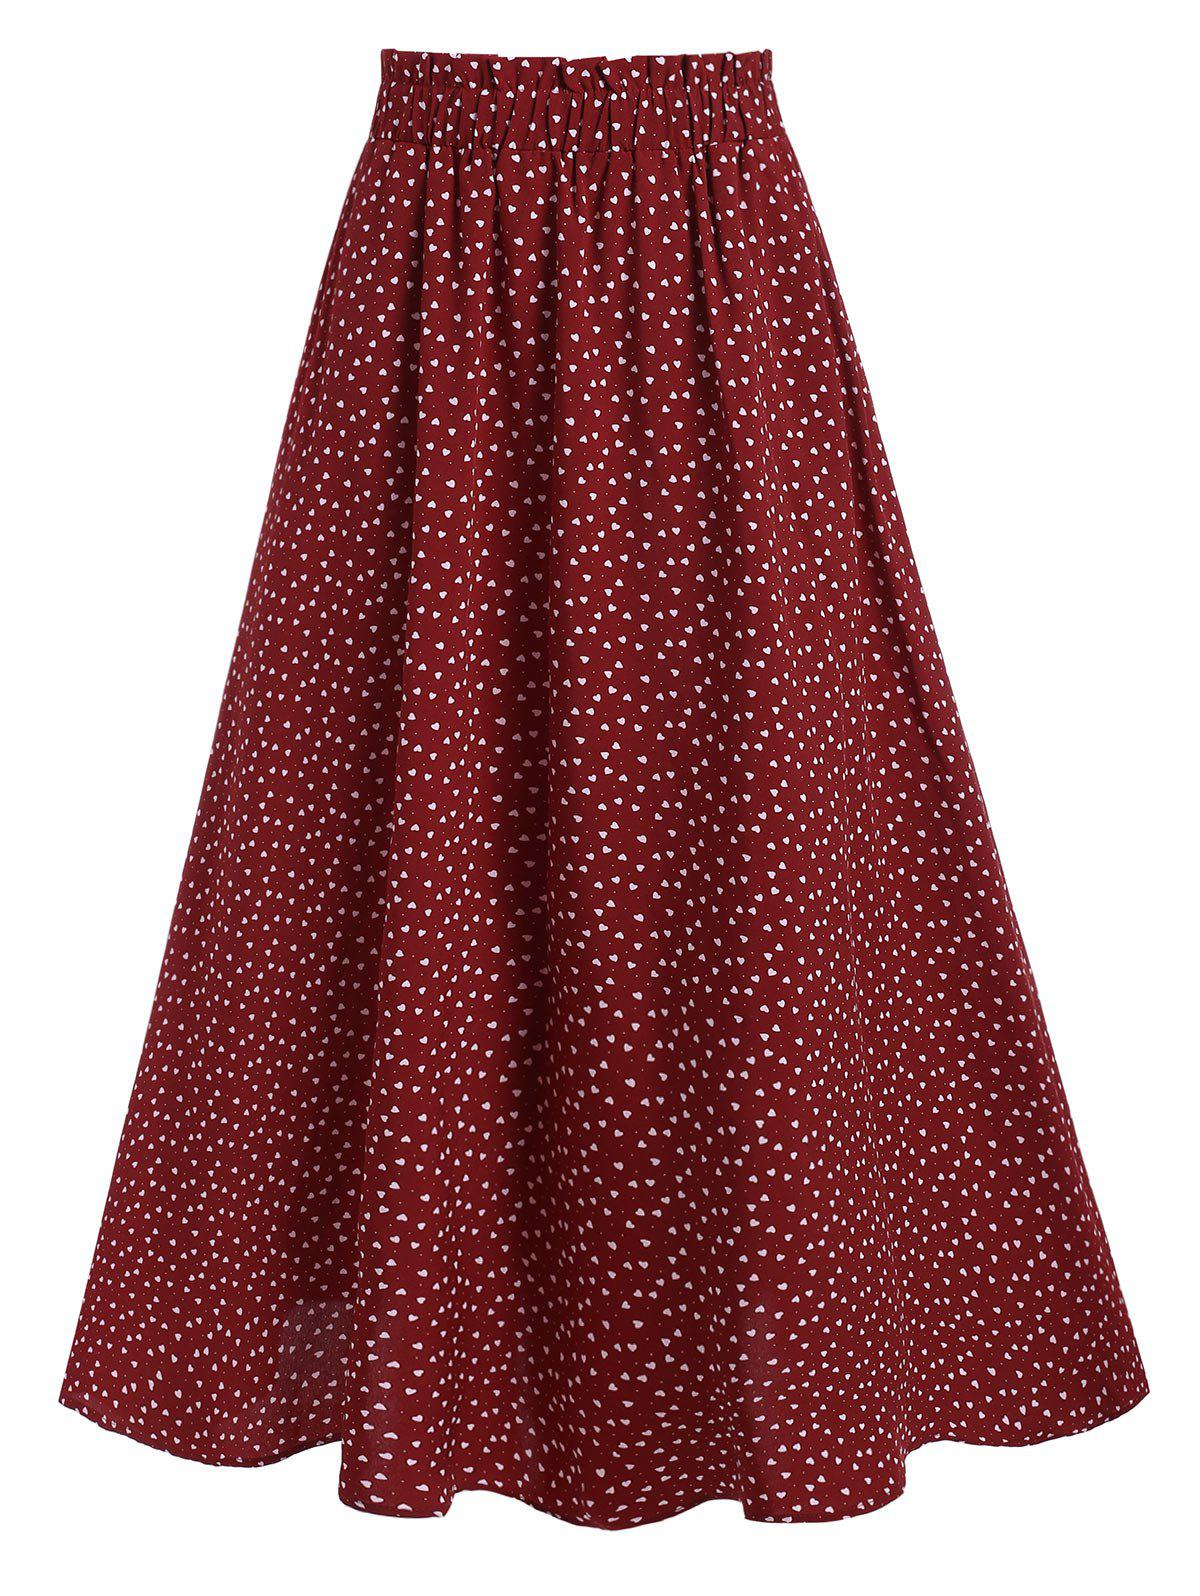 High Waisted Heart Print Midi Skirt - RED WINE XL